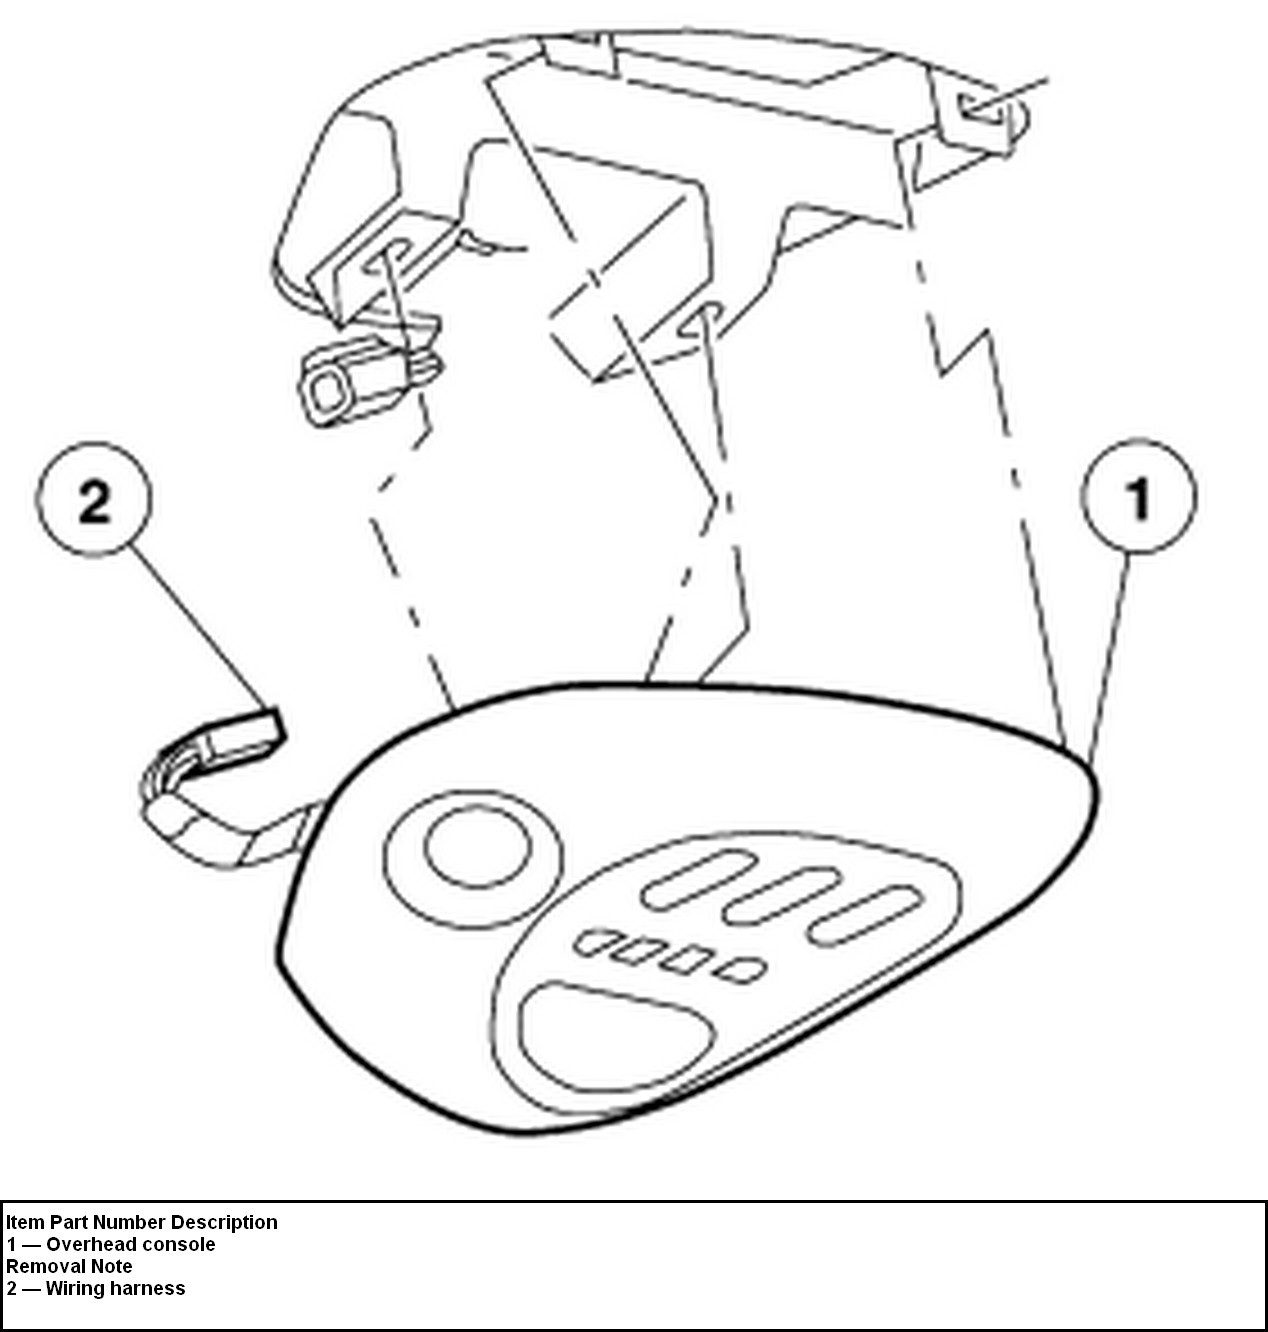 317157 How To Remove Ford F250 Overhead Console also 2011 Mitsubishi Galant Interior Parts further  on ford f 150 overhead console removal